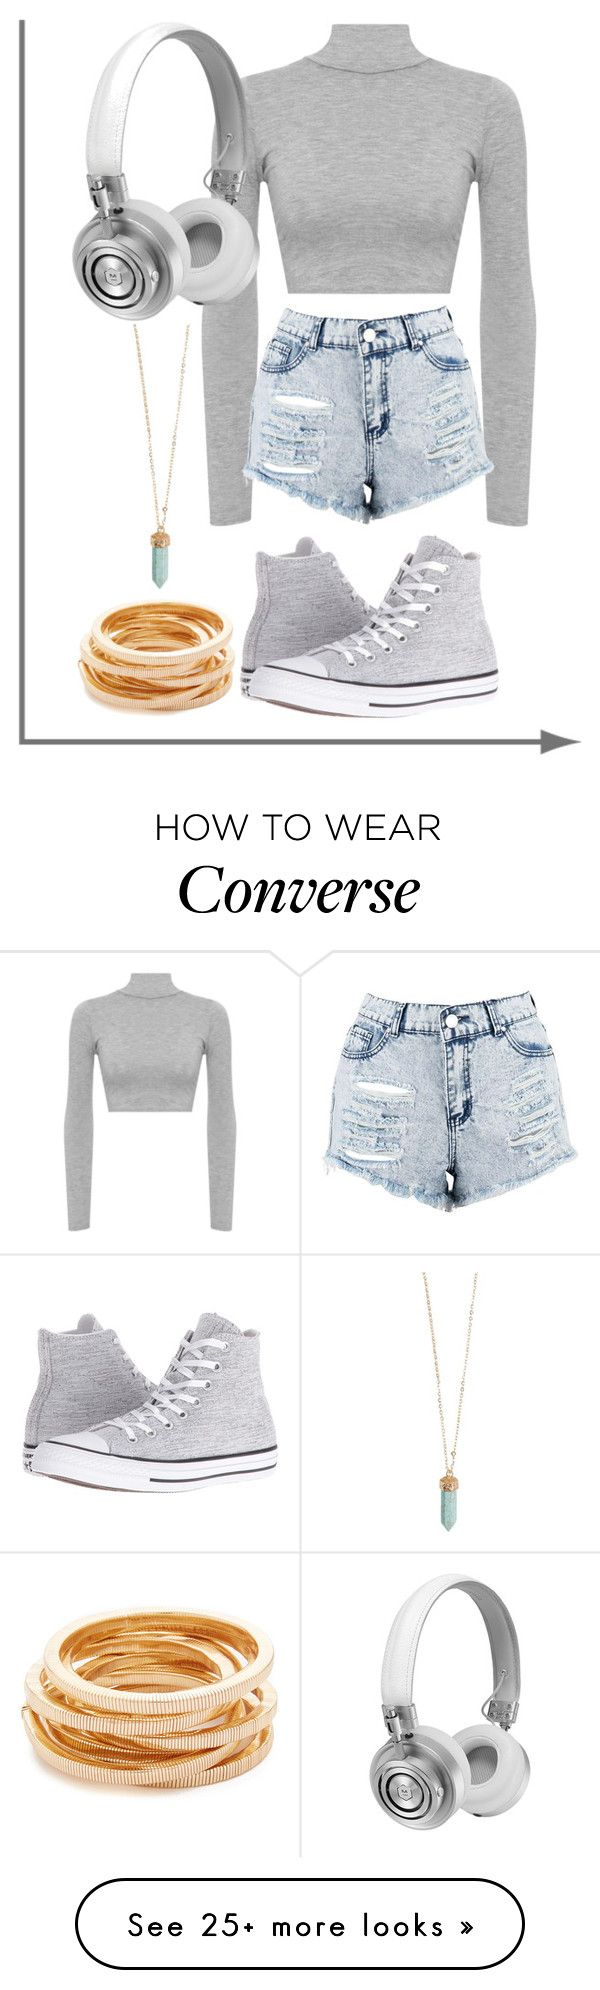 """Everythin' I See Is Grey"" by emmalineavery on Polyvore featuring WearAll, Boohoo, Master & Dynamic, Converse and Kenneth Jay Lane"